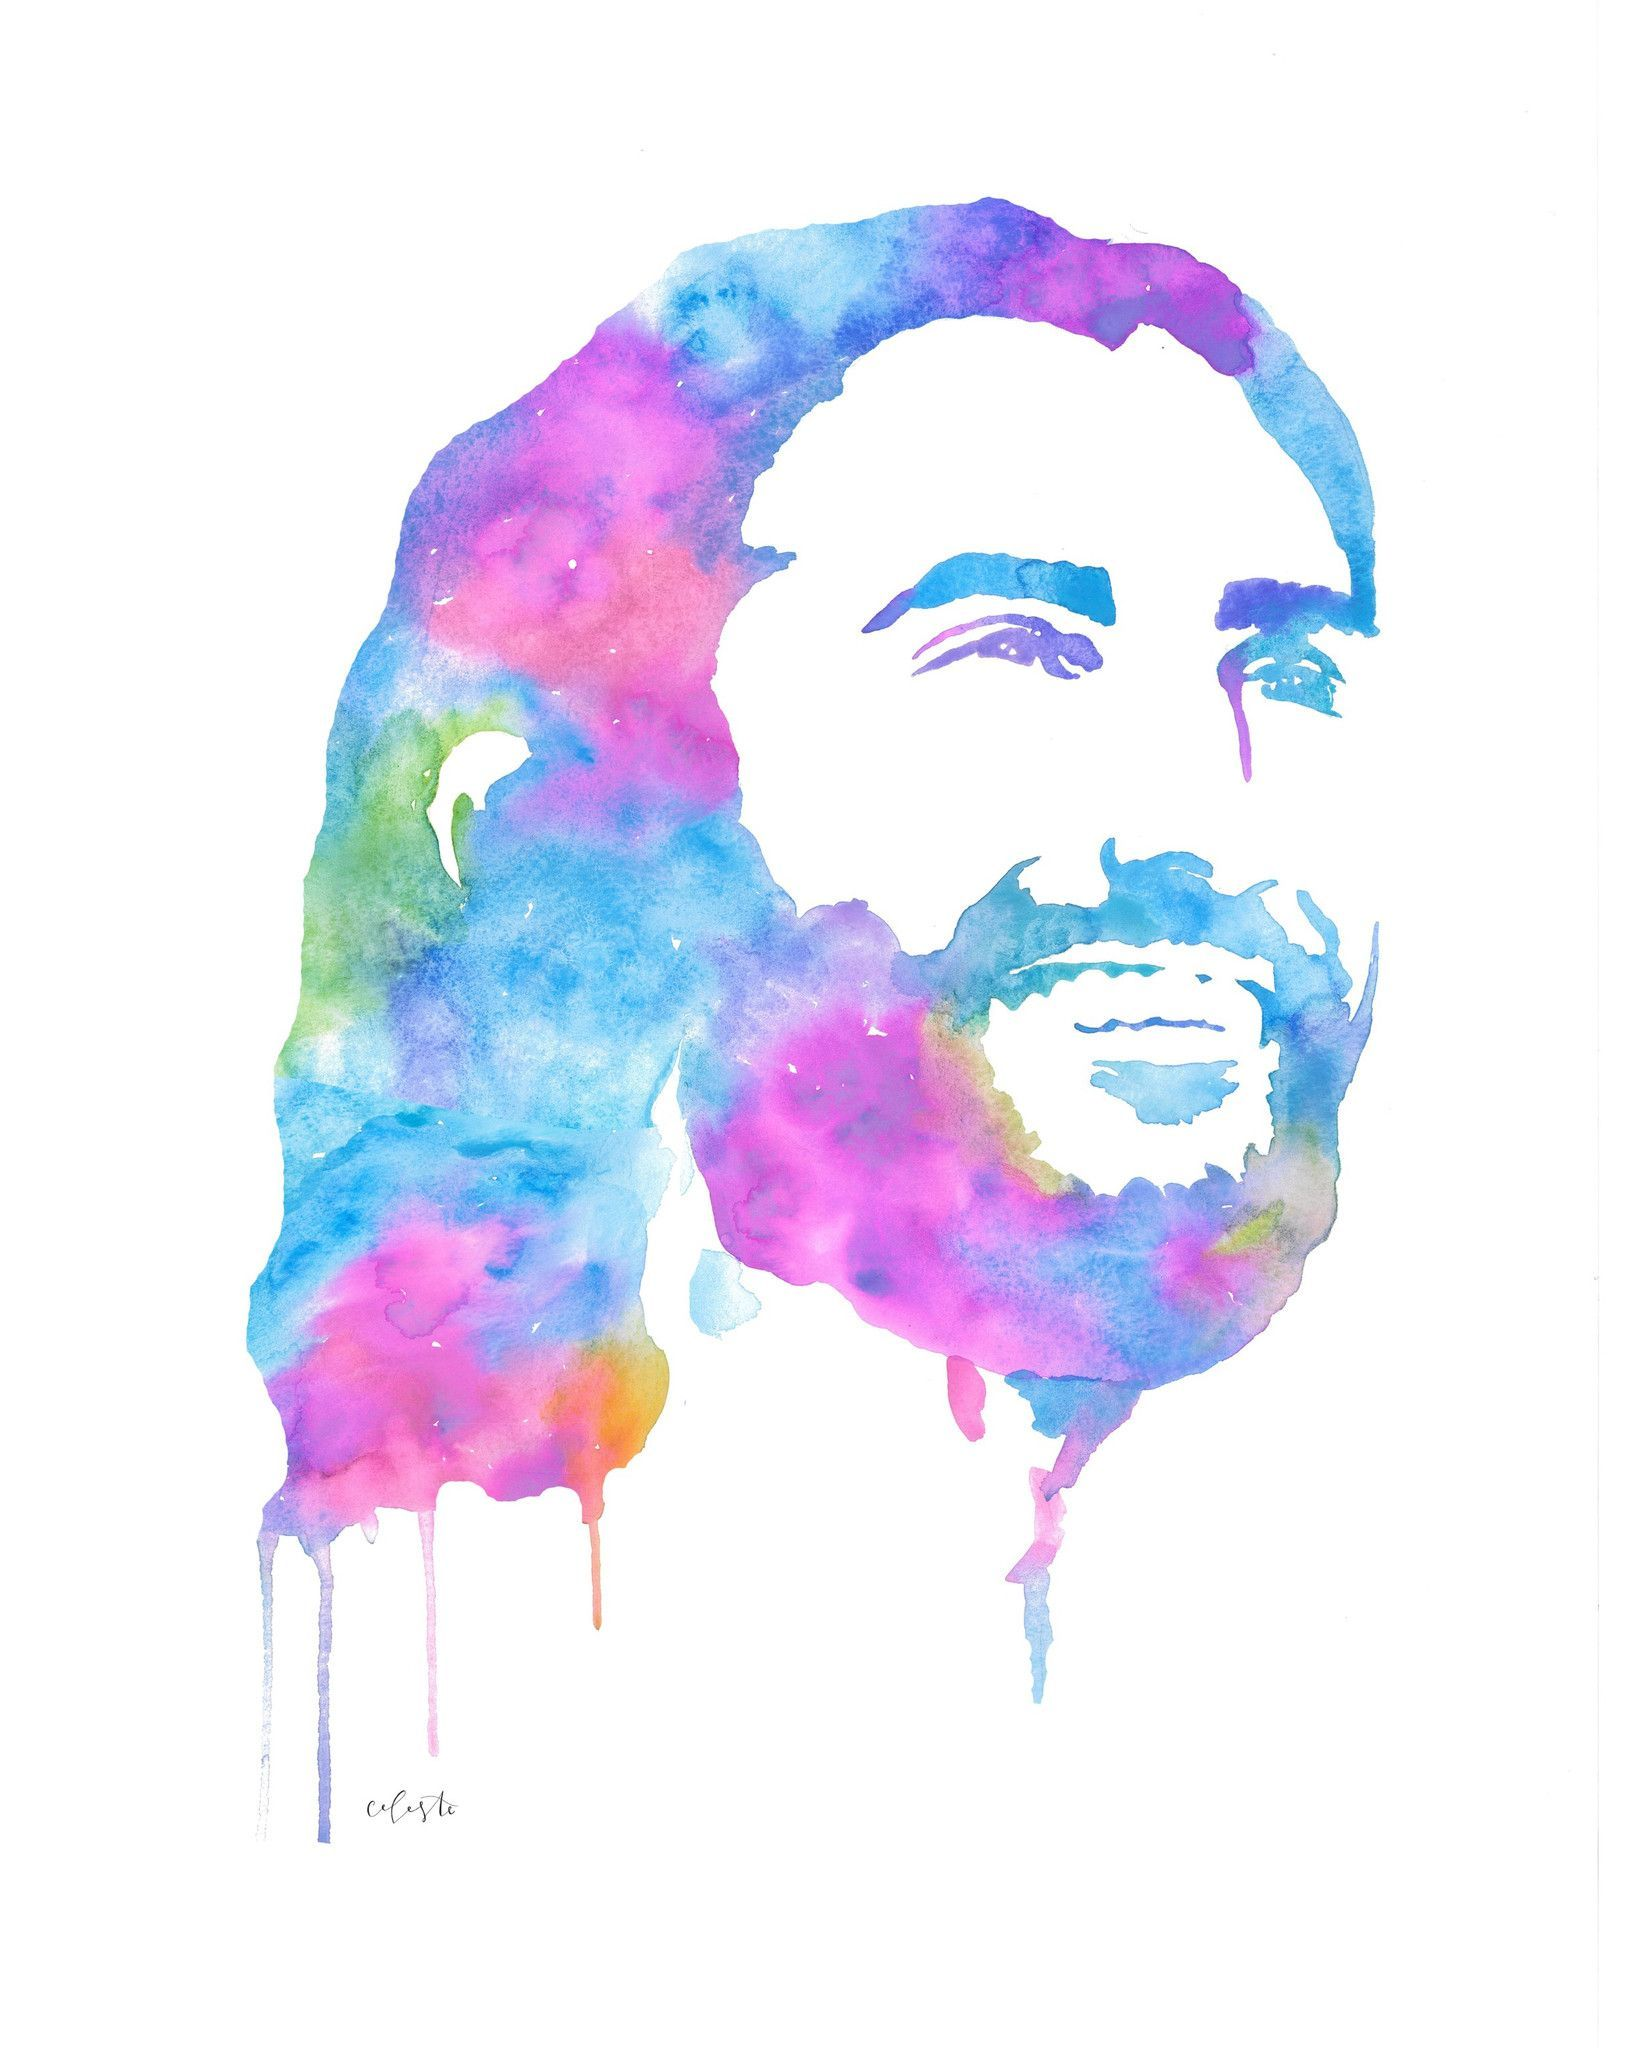 Jesus Christ The Savior Cool Tones Jesus Painting Jesus Art